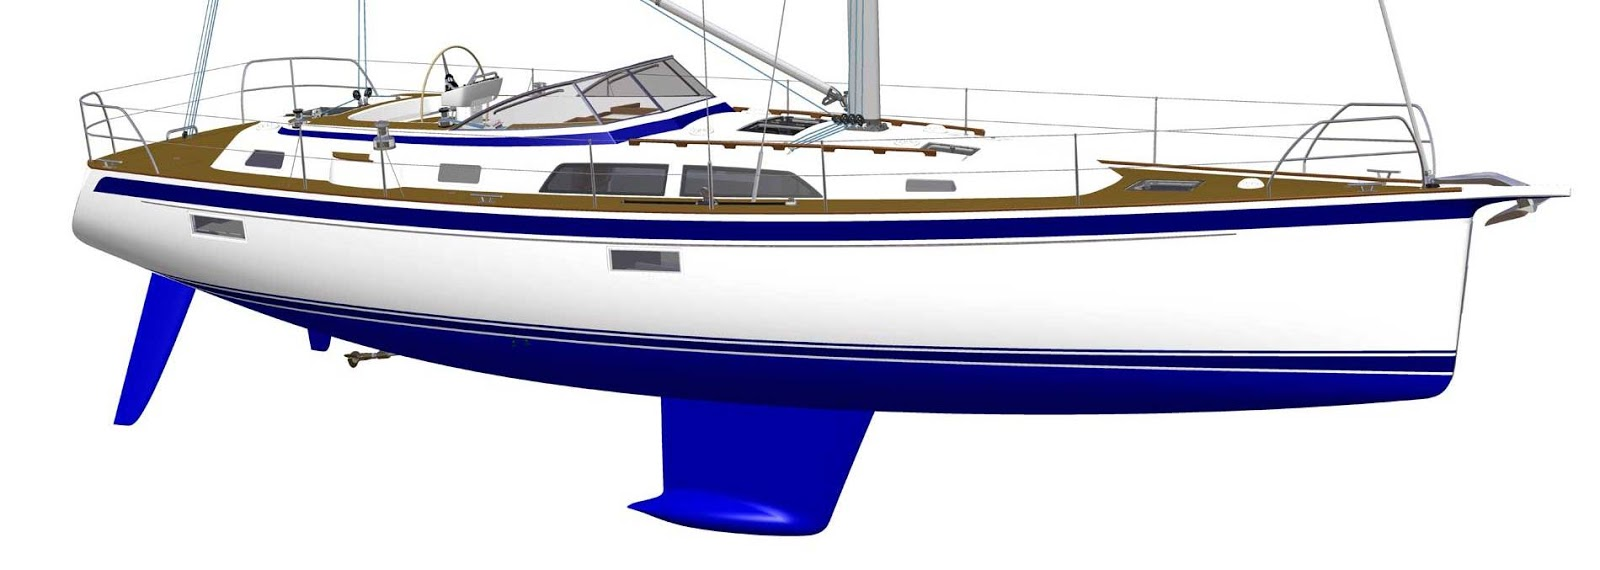 Interesting Sailboats: AMEL 50 - 2018 EUROPEAN YACHT OF THE